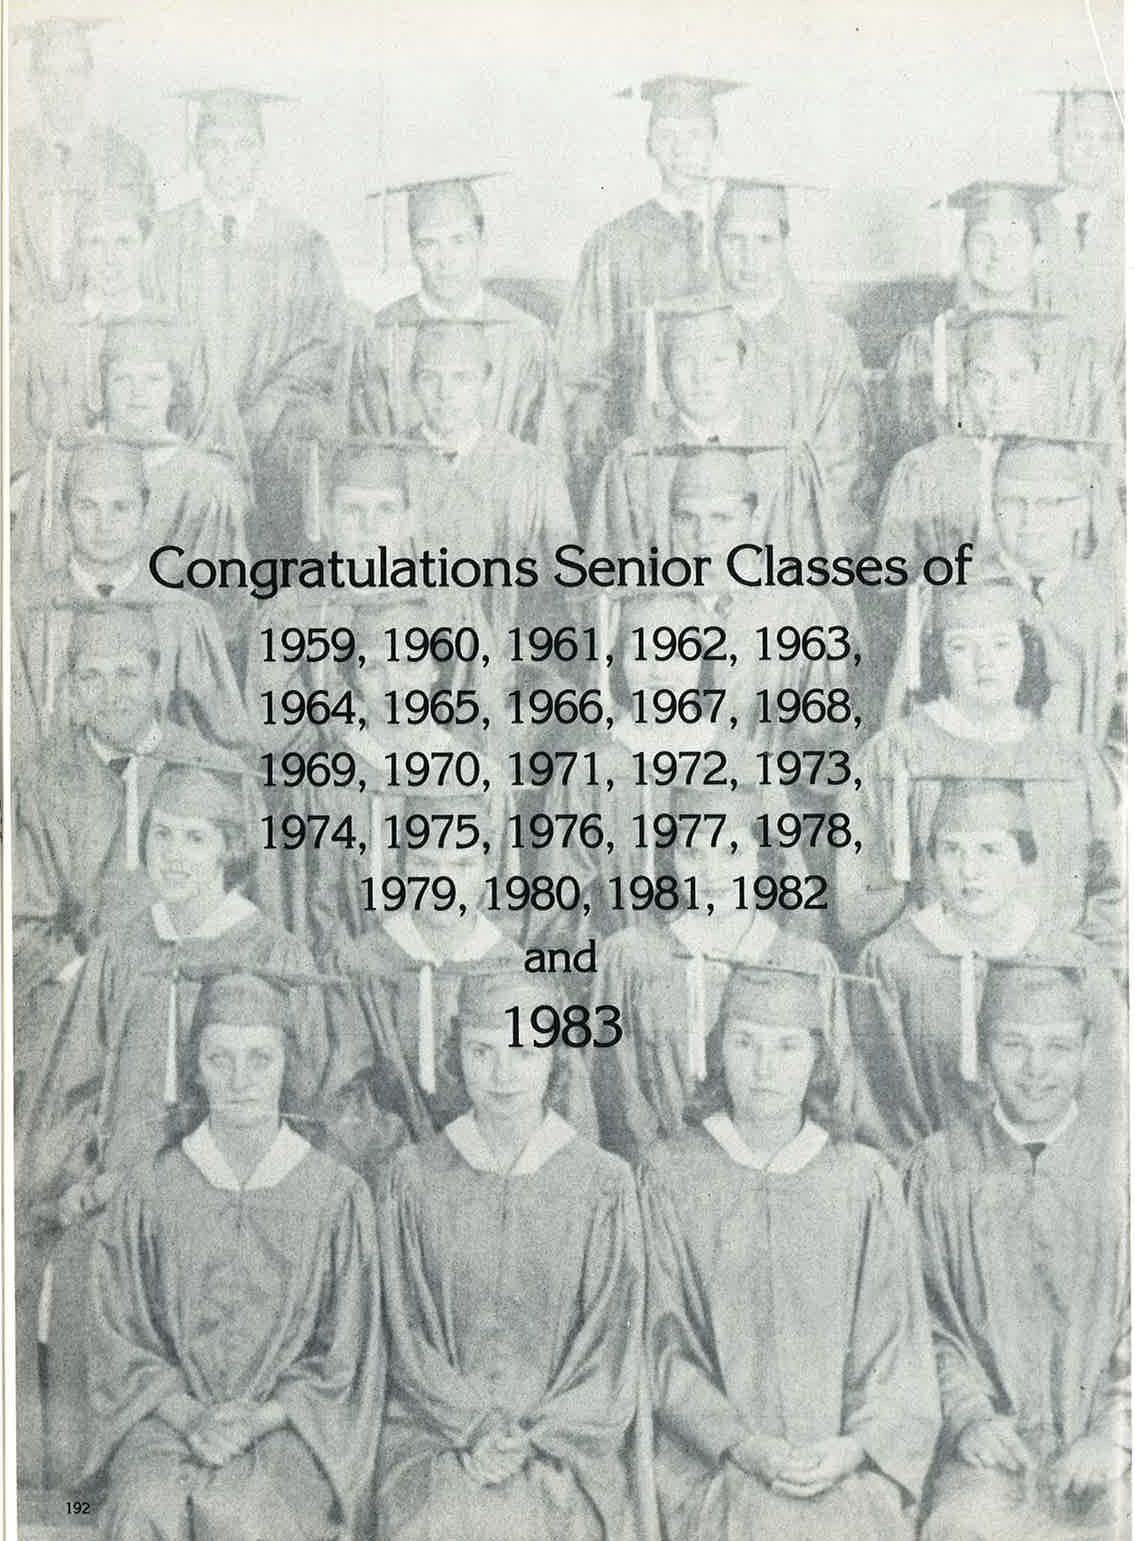 1983_Yearbook_97.jpg